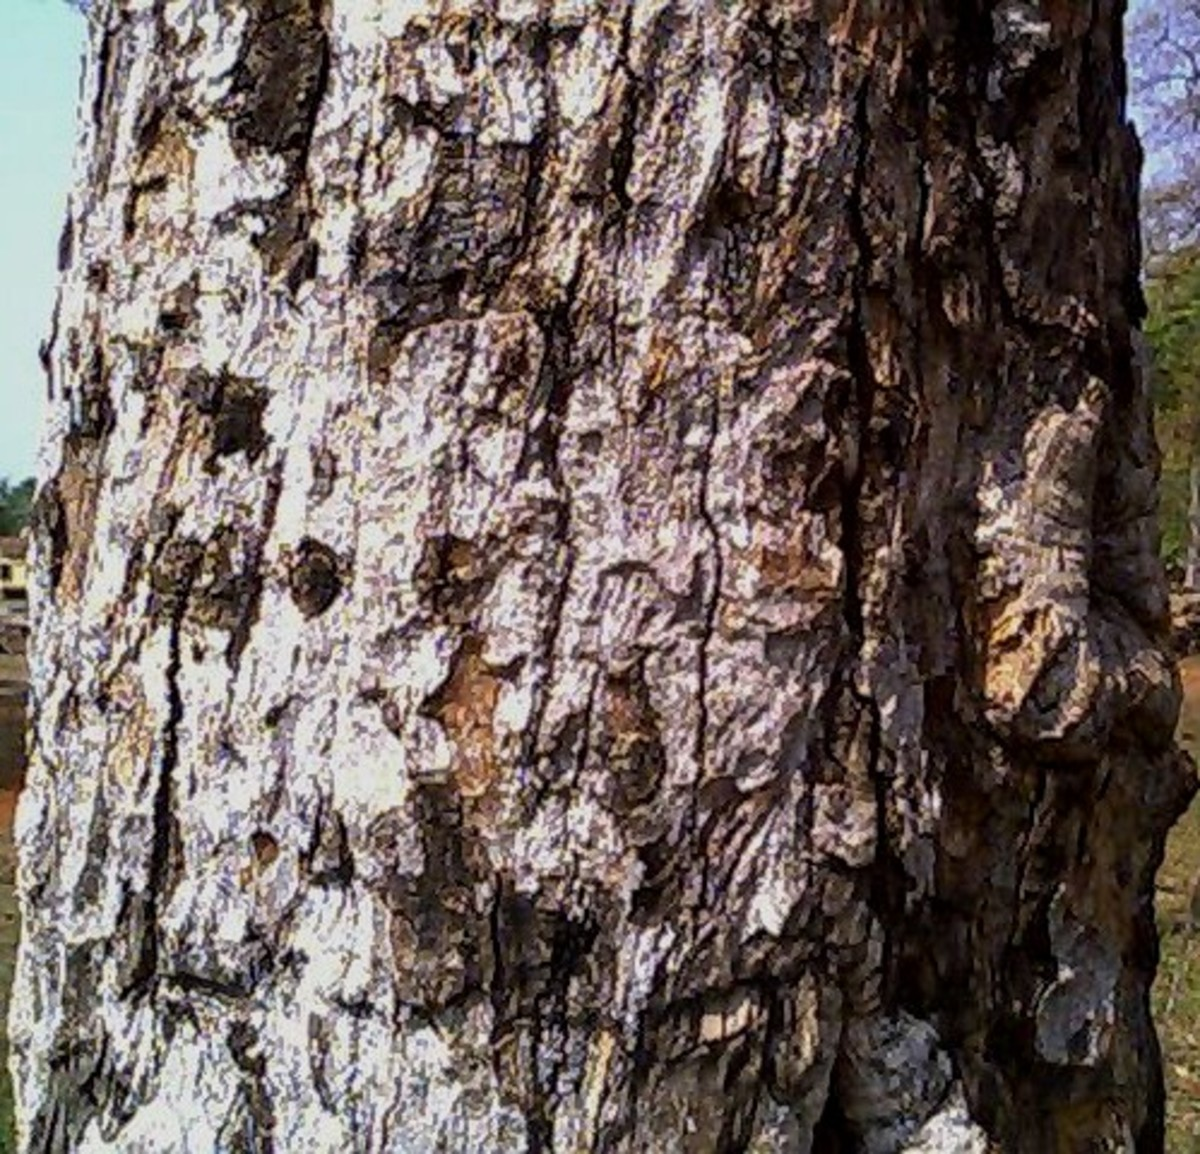 Bark of the bael tree